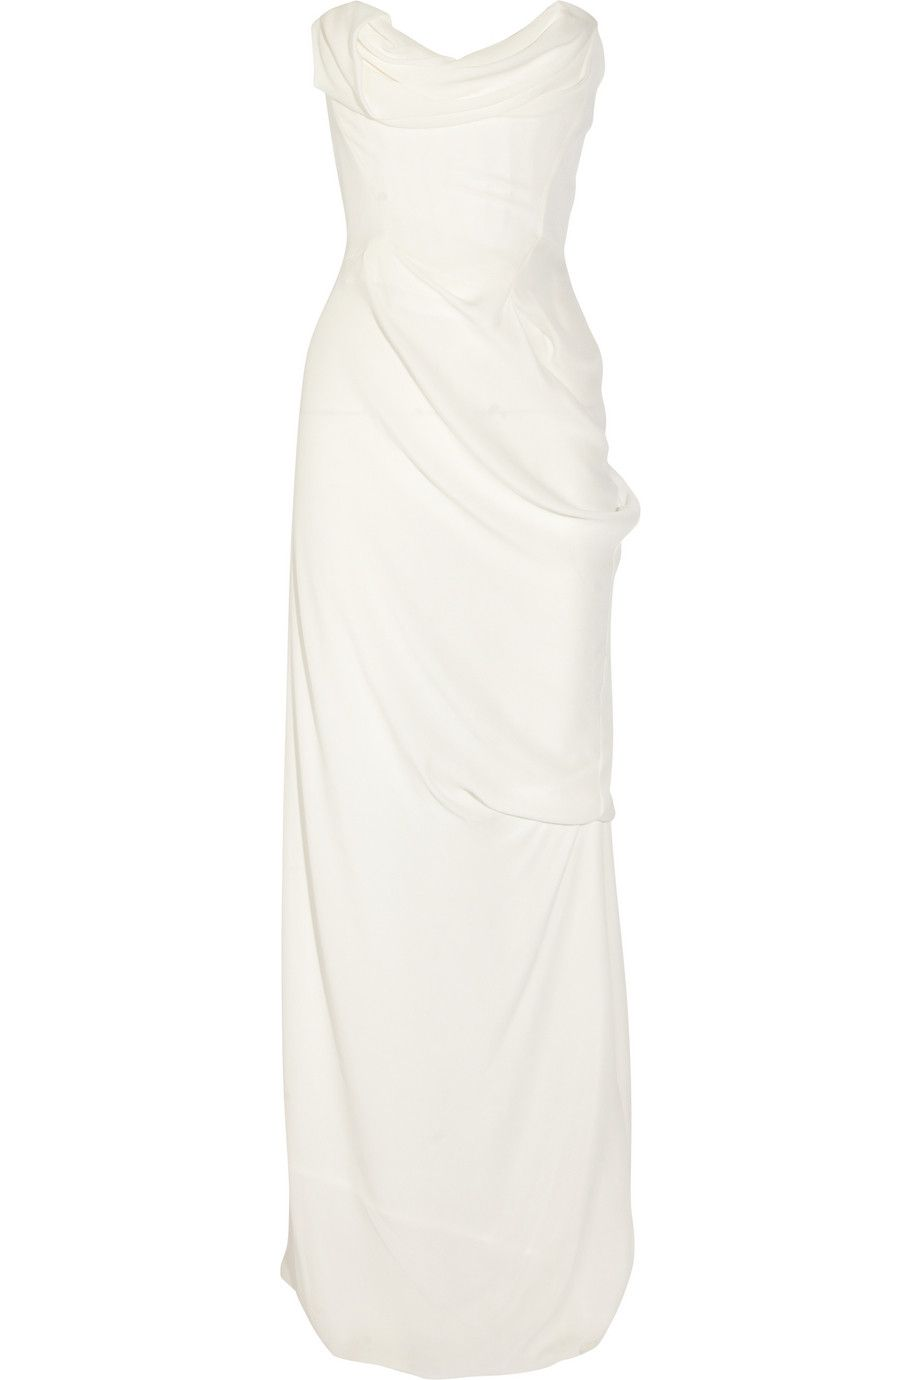 Vivienne Westwood Gold Label Corseted Silk Georgette Gown Fashion Long White Dress Dresses [ 1380 x 920 Pixel ]